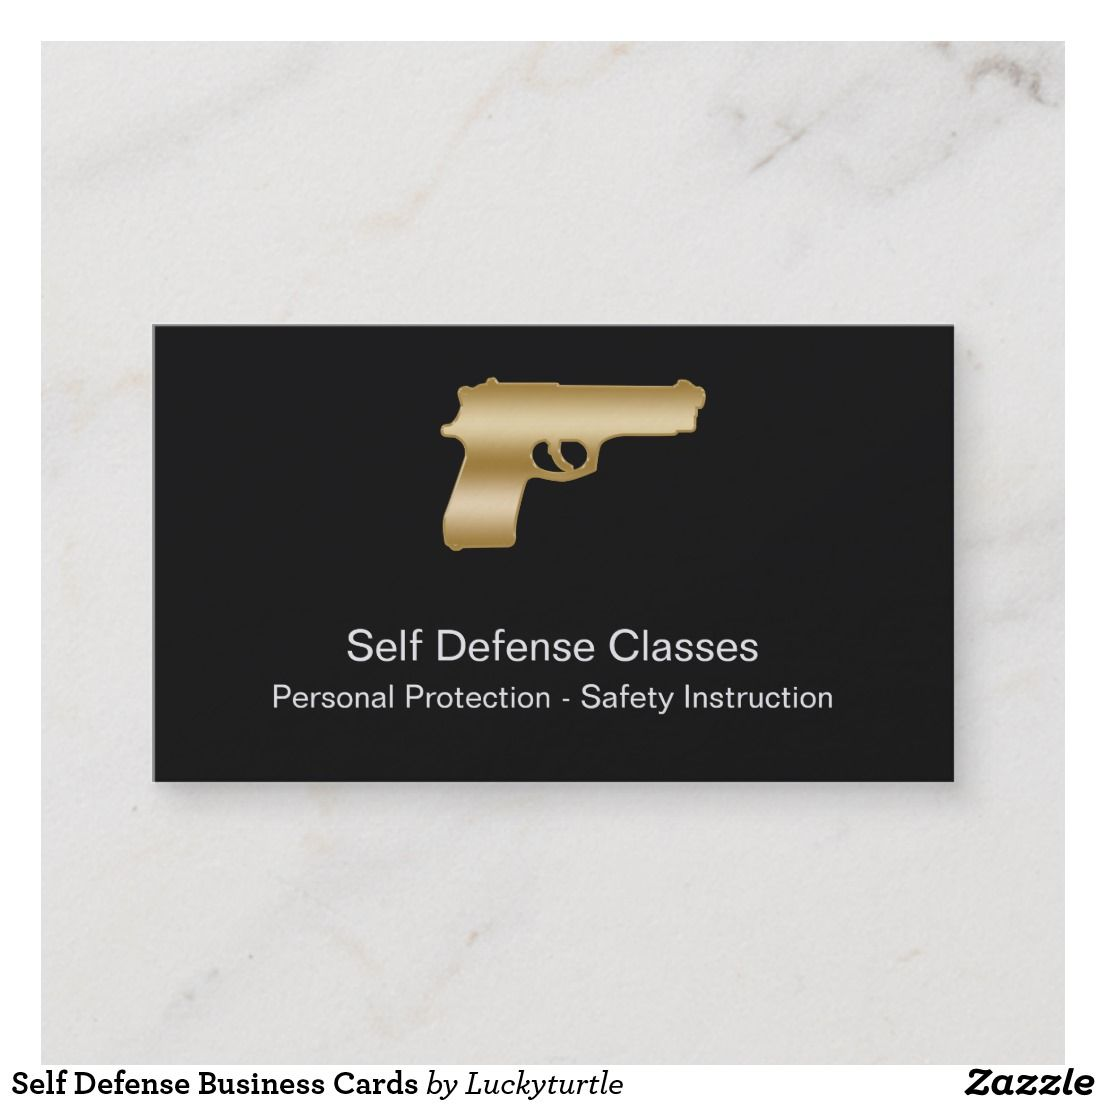 Self Defense Business Cards (With images